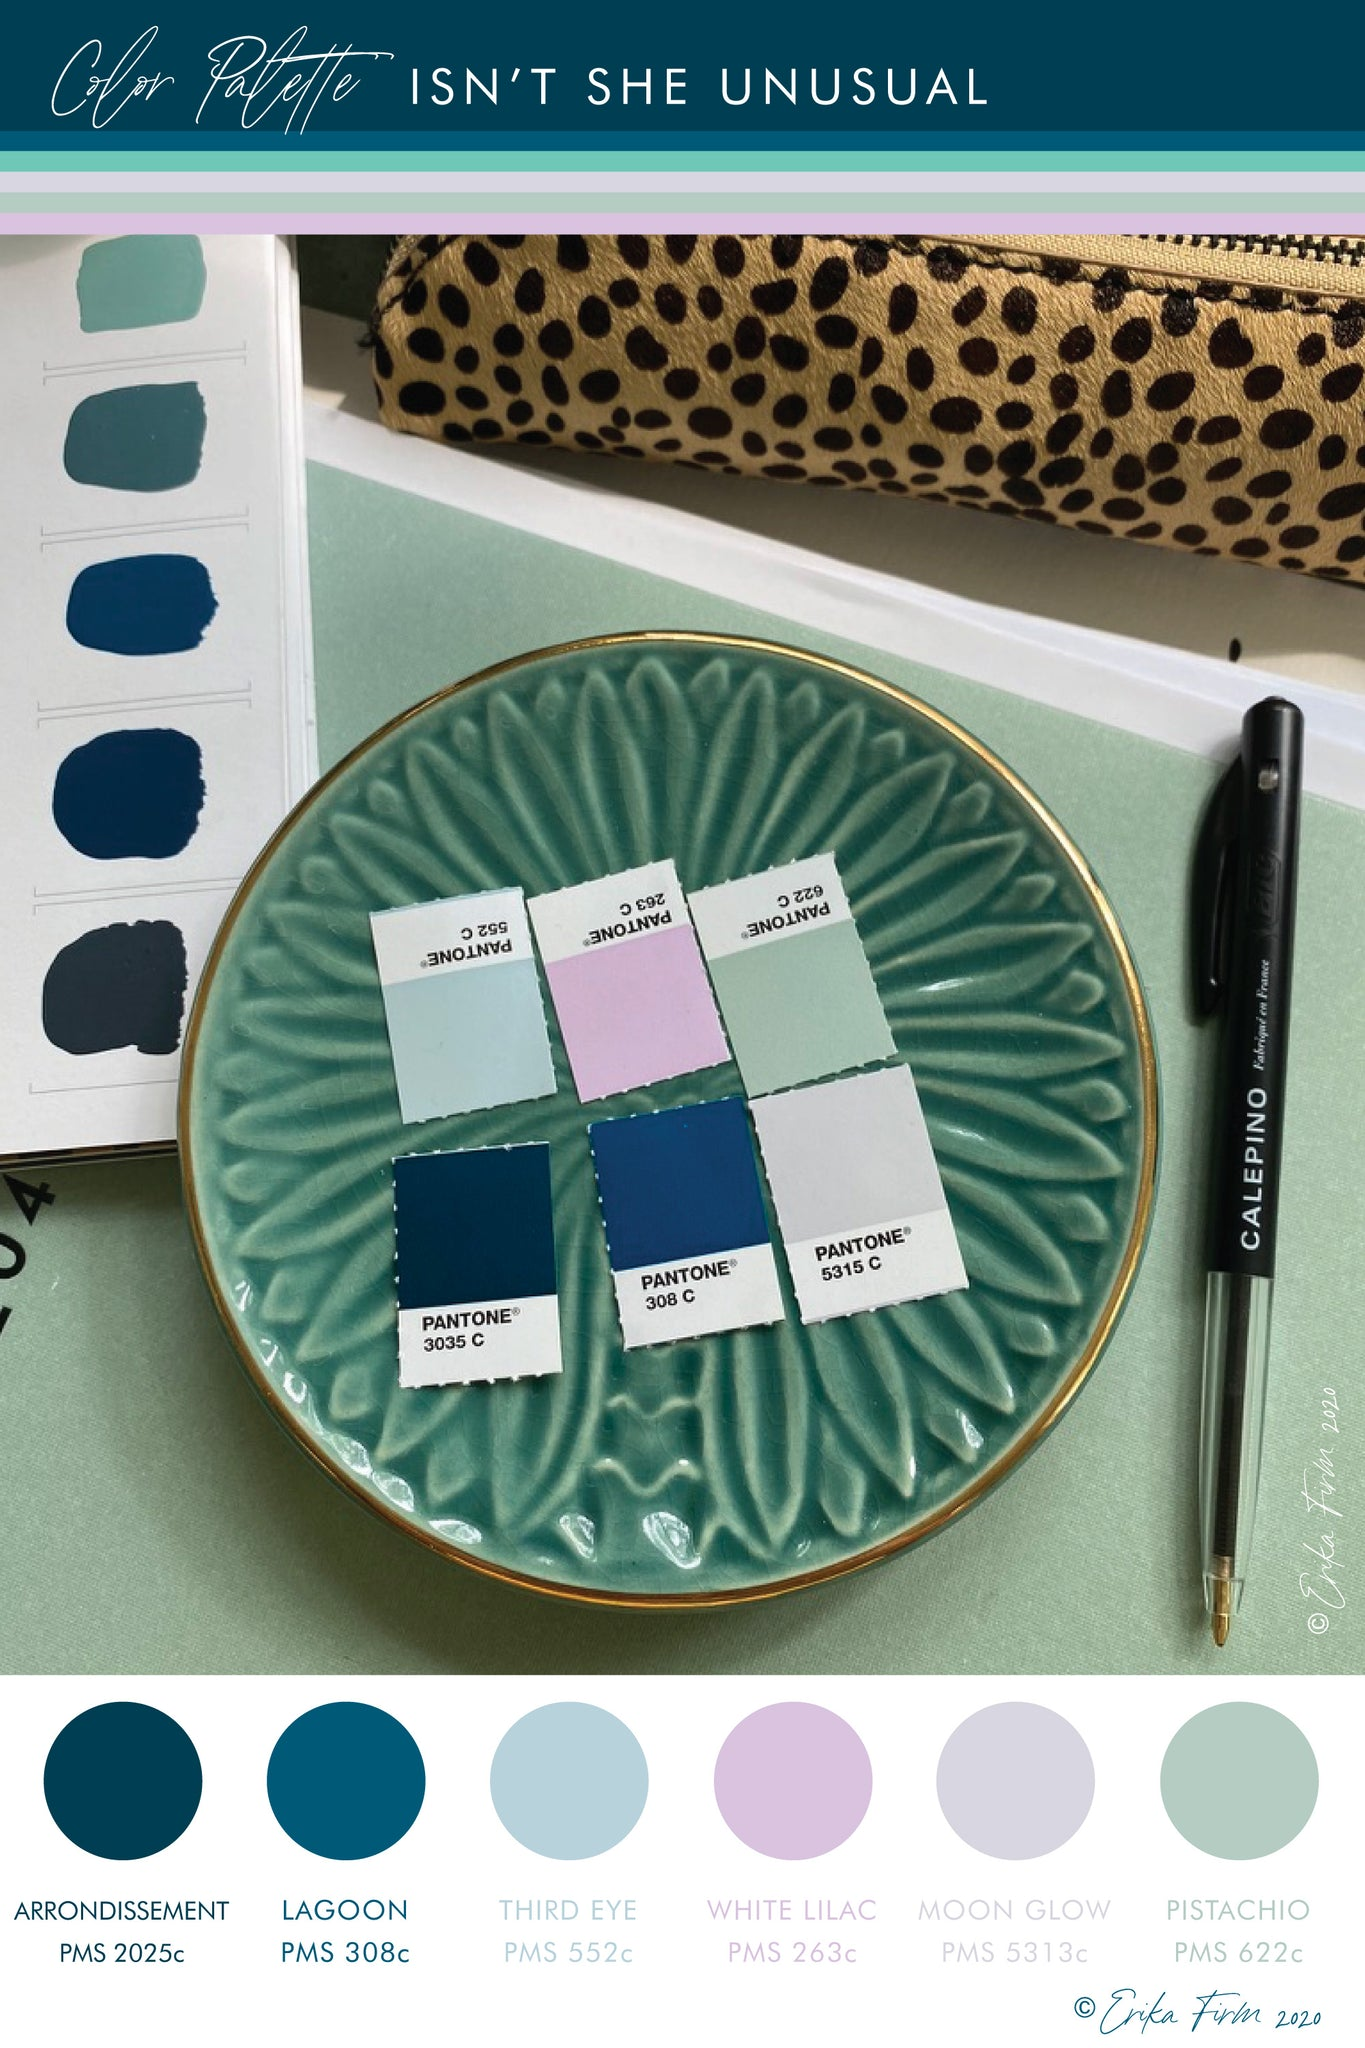 Color Palette Isn't She Unusual by Erika Firm featuring Dark Arrondissement Blue, Lagoon blue, third eye blue, white lilac, moon glow grey, and pistachio green